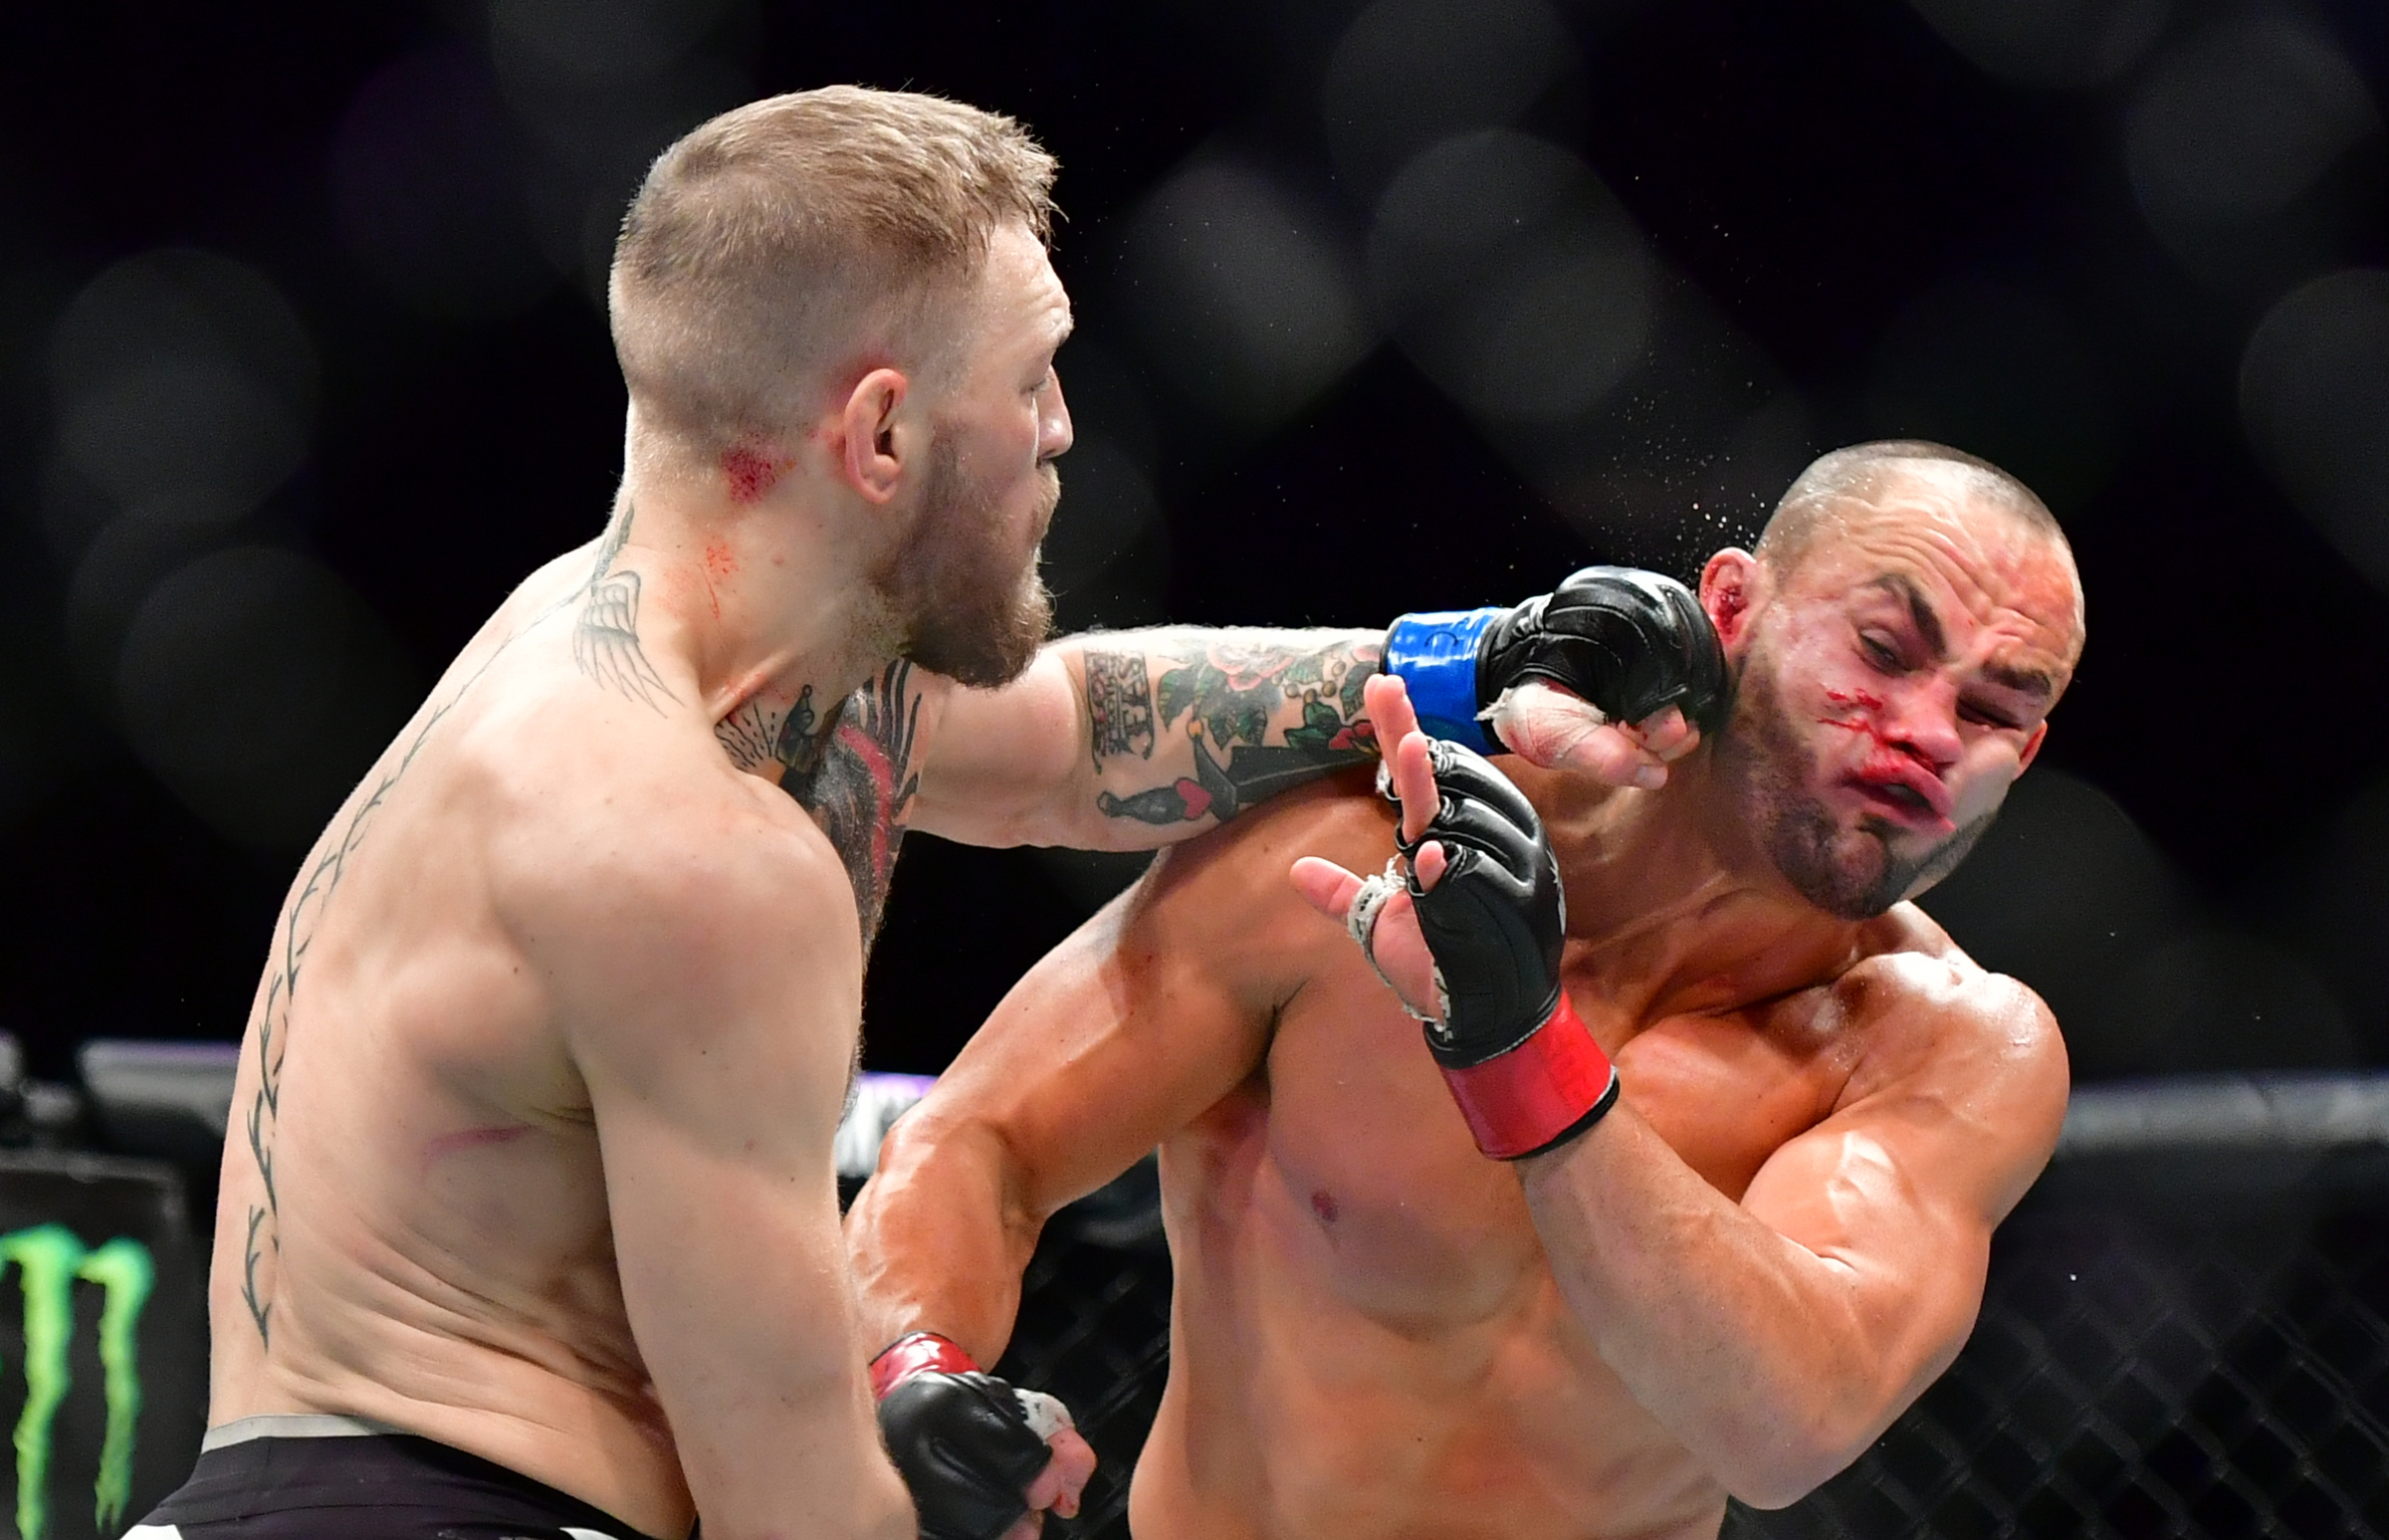 Conor McGregor not sorry for shoving Bellator ref